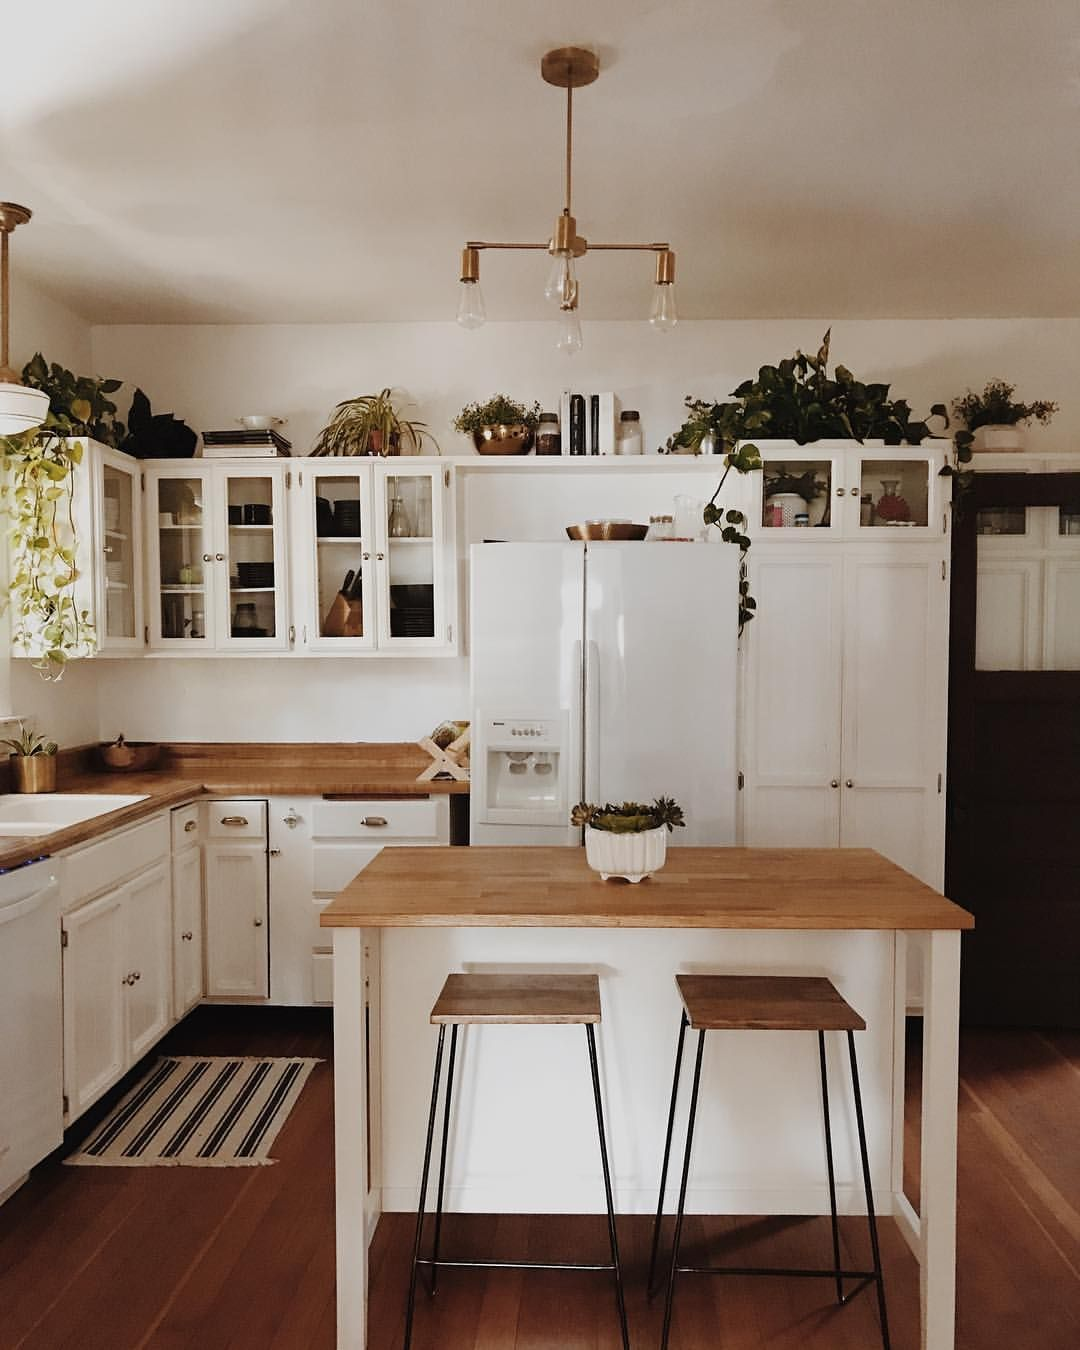 Imaginecozy Staging A Kitchen: Pin By Hannah Li On House Decor In 2019